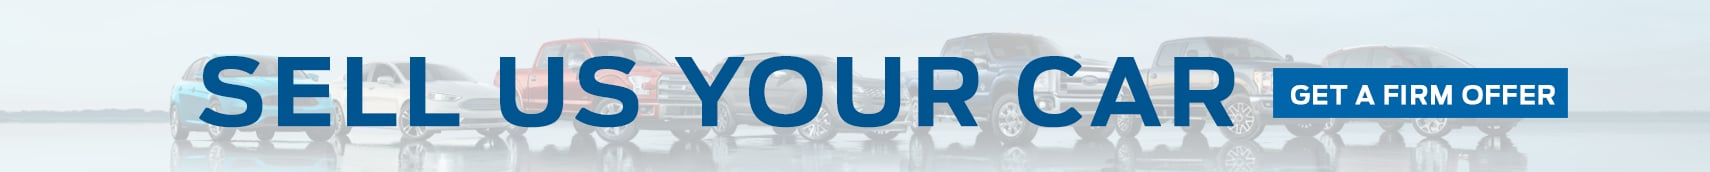 Sell Us Your Car at LHM Ford Lincoln Draper